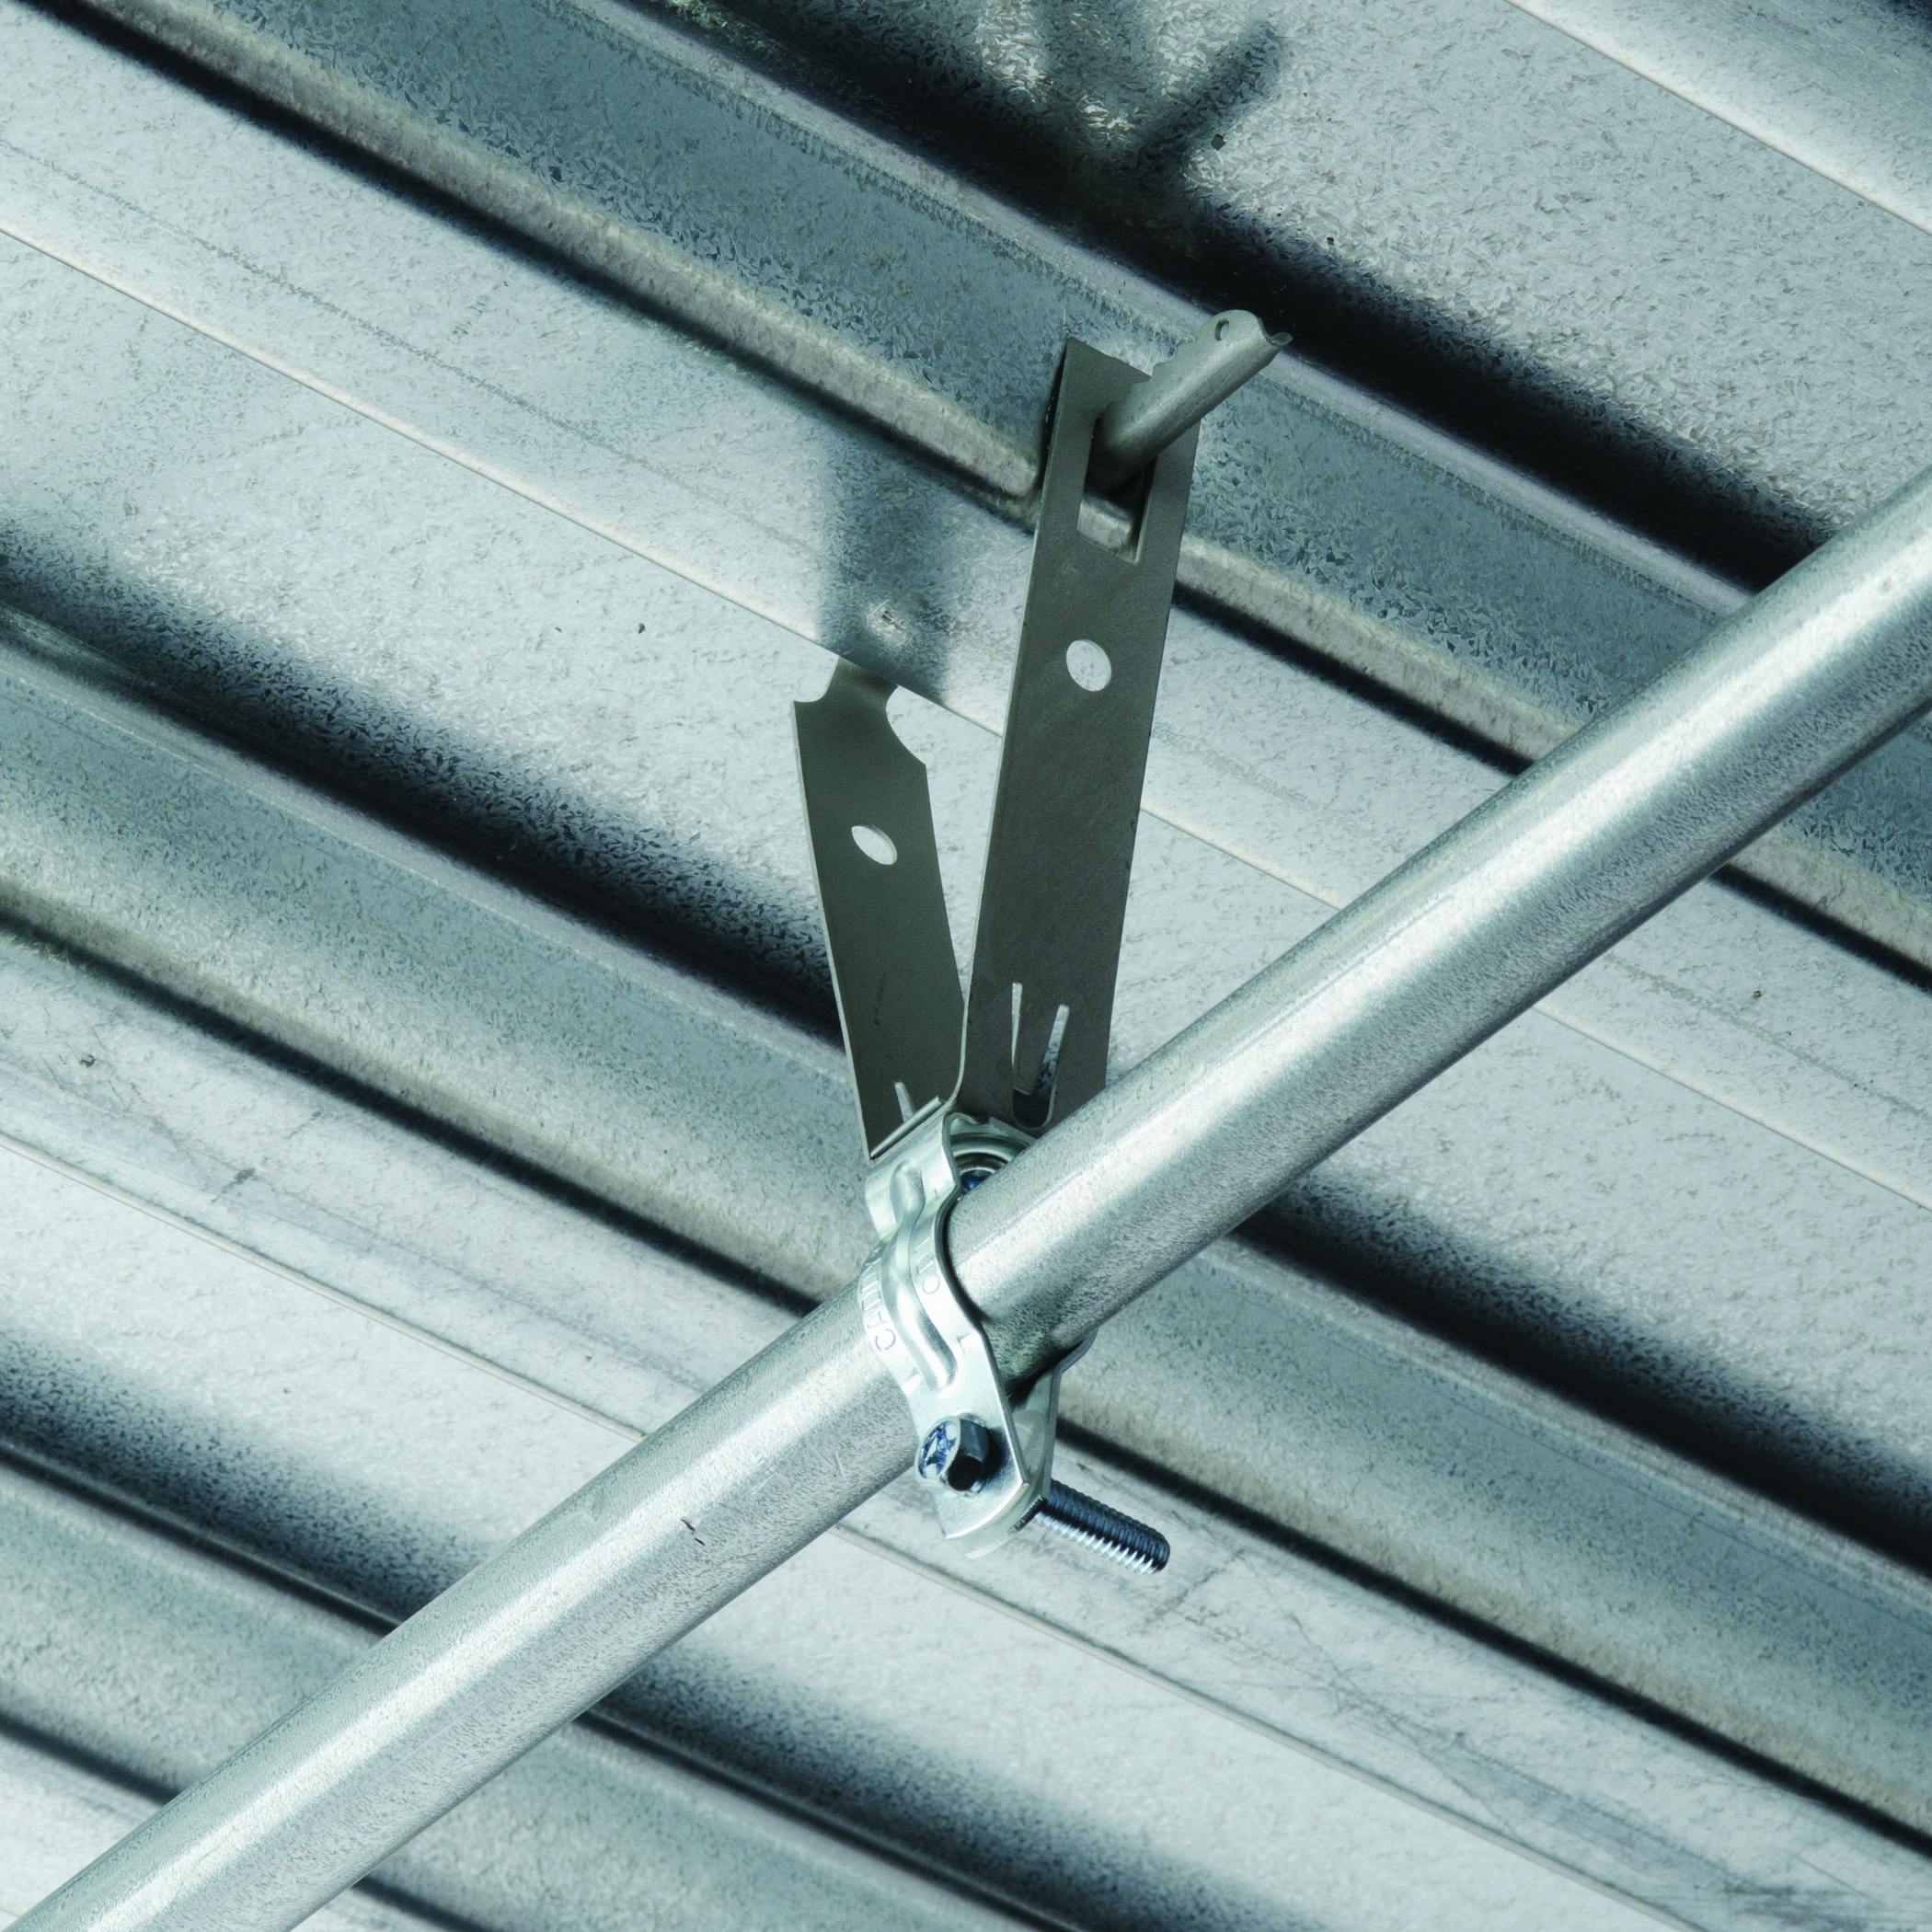 Used Photos Of Electrical Conduit For Wiring Free Download Wiring